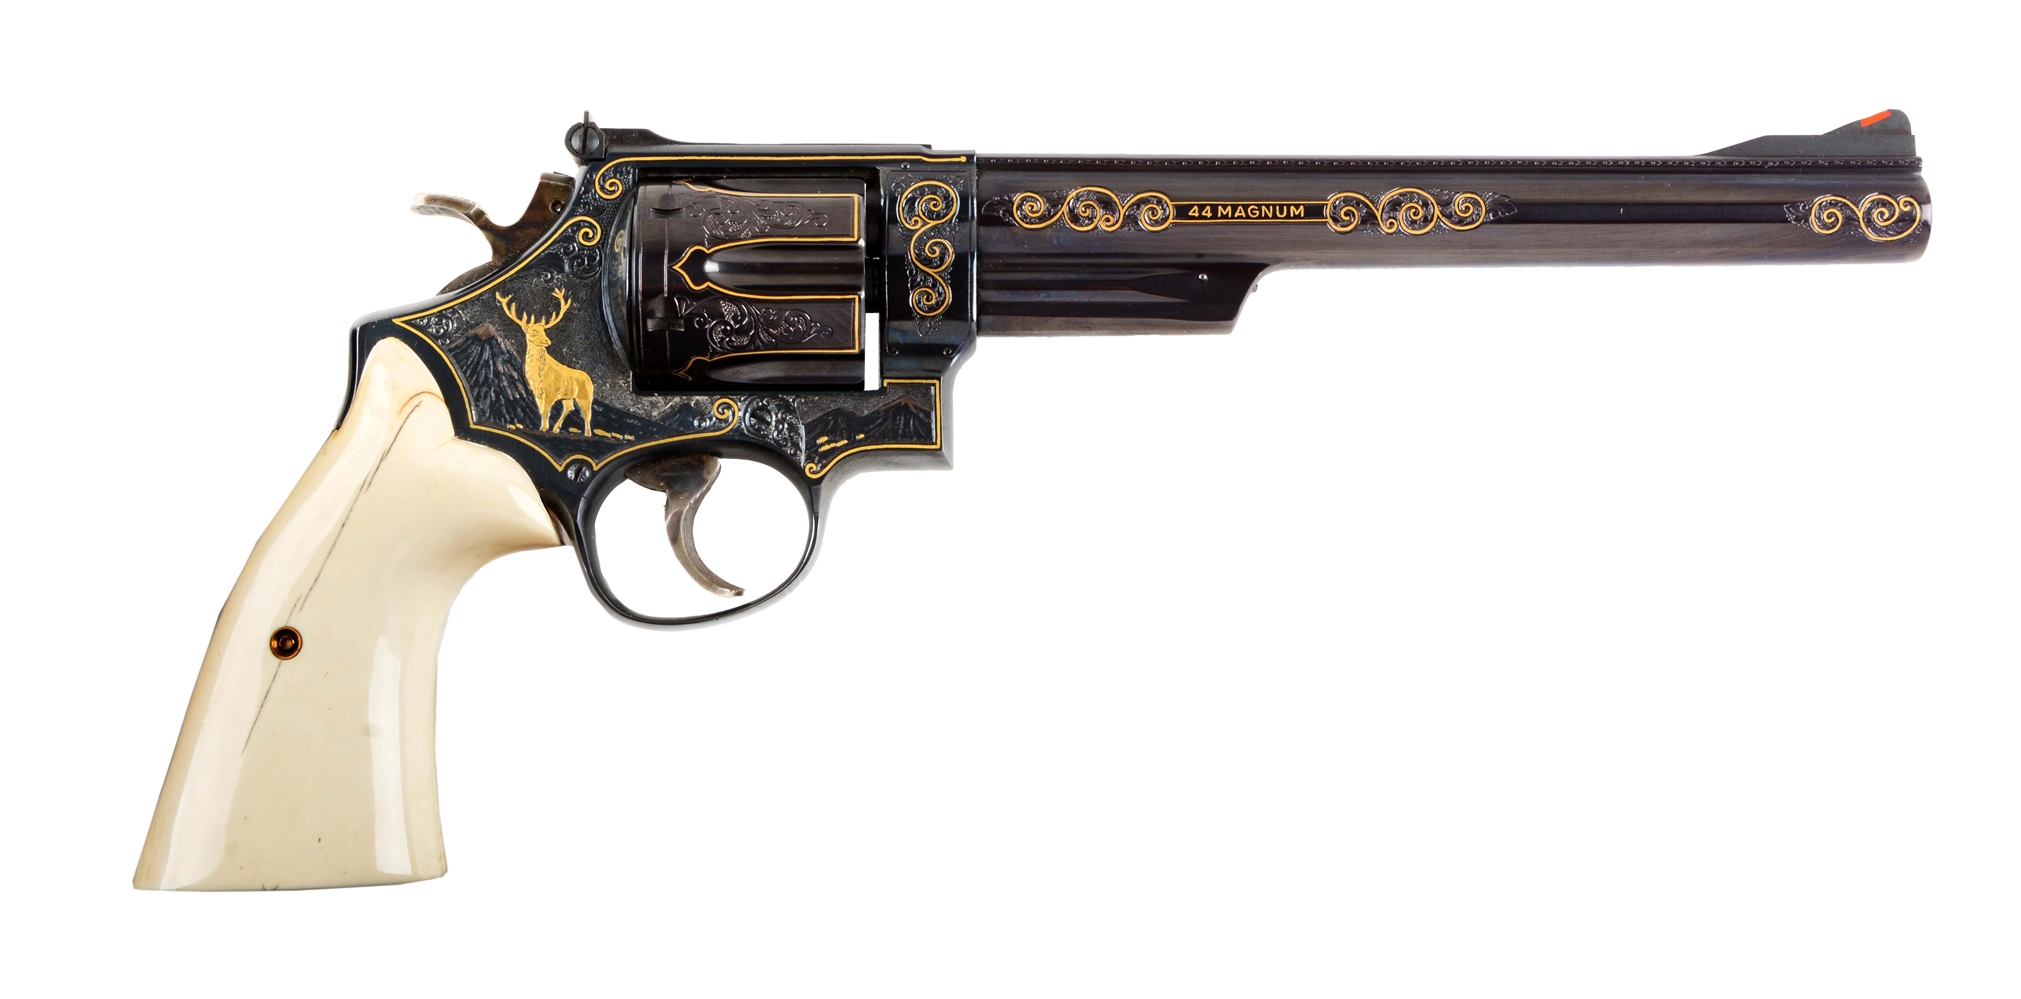 (M) Engraved & Inlaid S&W Model 29-2 Double Action Revolver.